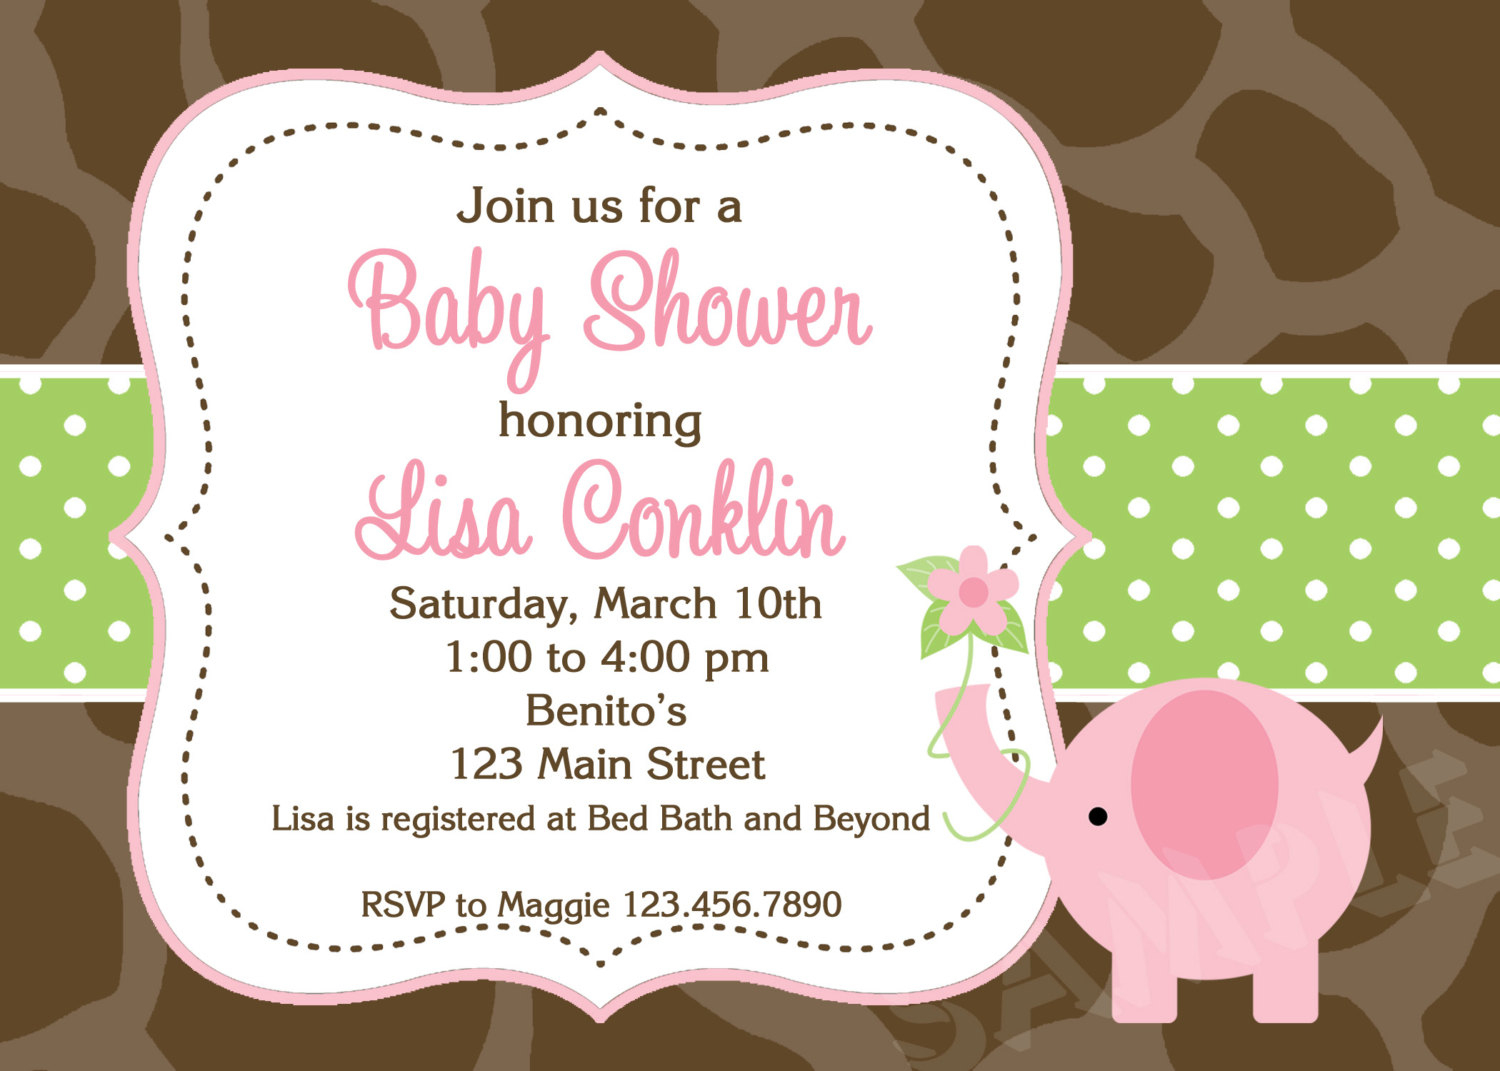 Printable Elephant Baby Shower Invitations My Face Burns After Shower - Baby Shower Cards Online Free Printable